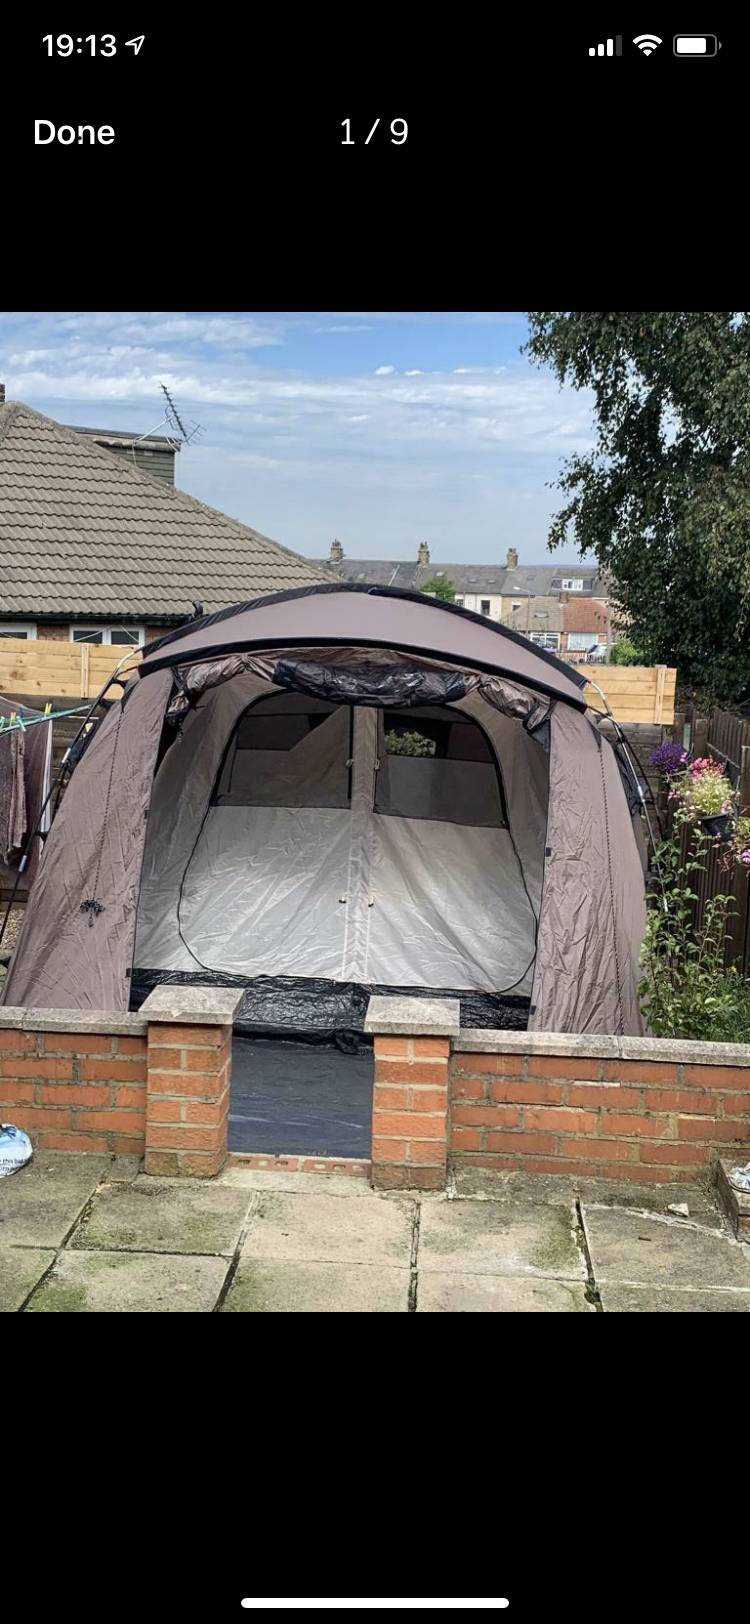 4 Used Tents, Buy and Sell | Preloved